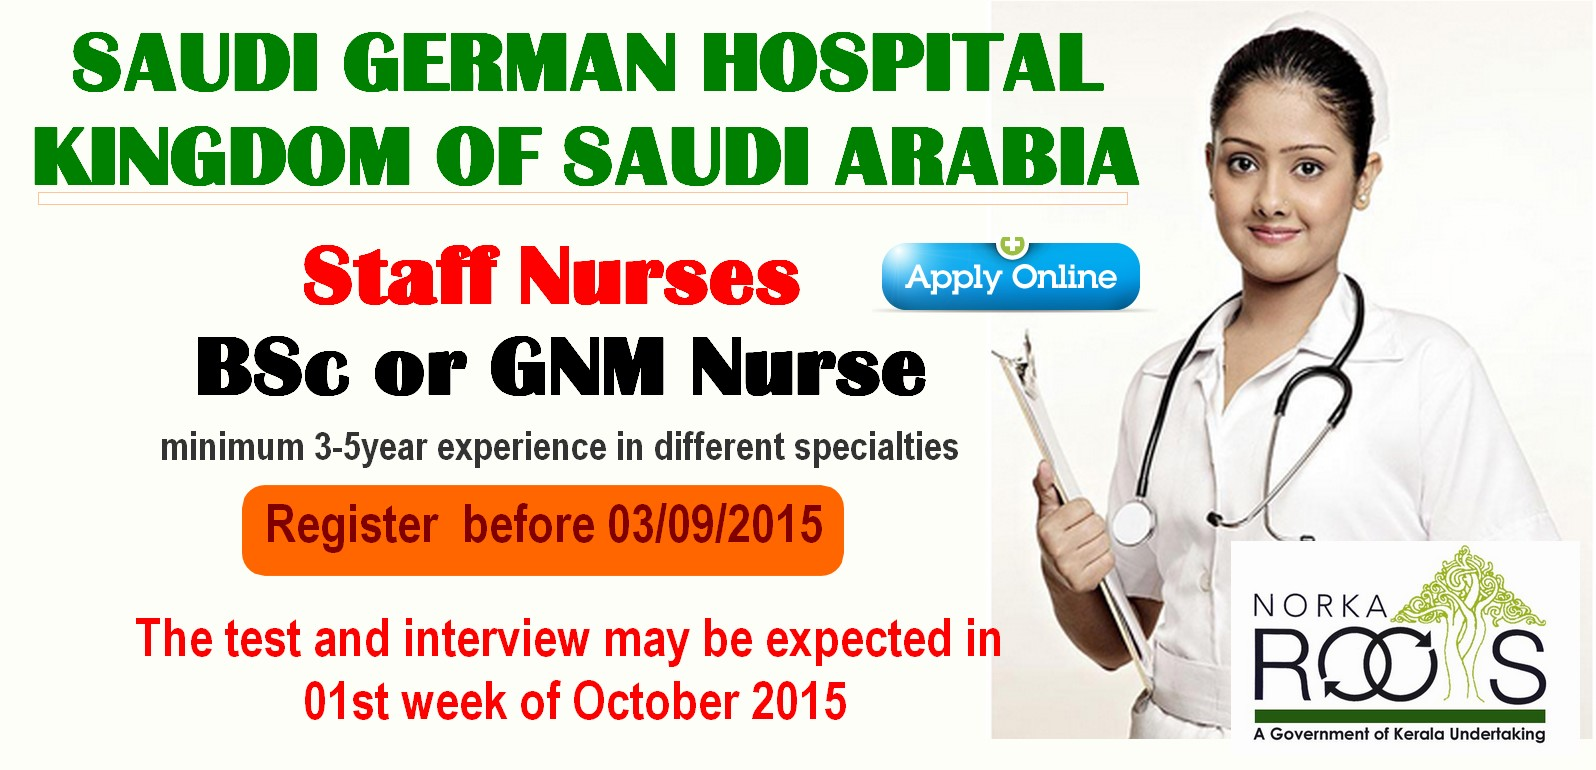 nursesvacancy com norka roots conducts recruitment of nurses for staff nurses bsc or gnm nurse minimum 3 5year experience in different specialties the candidate should be fluent in english age 25 to 35 years old